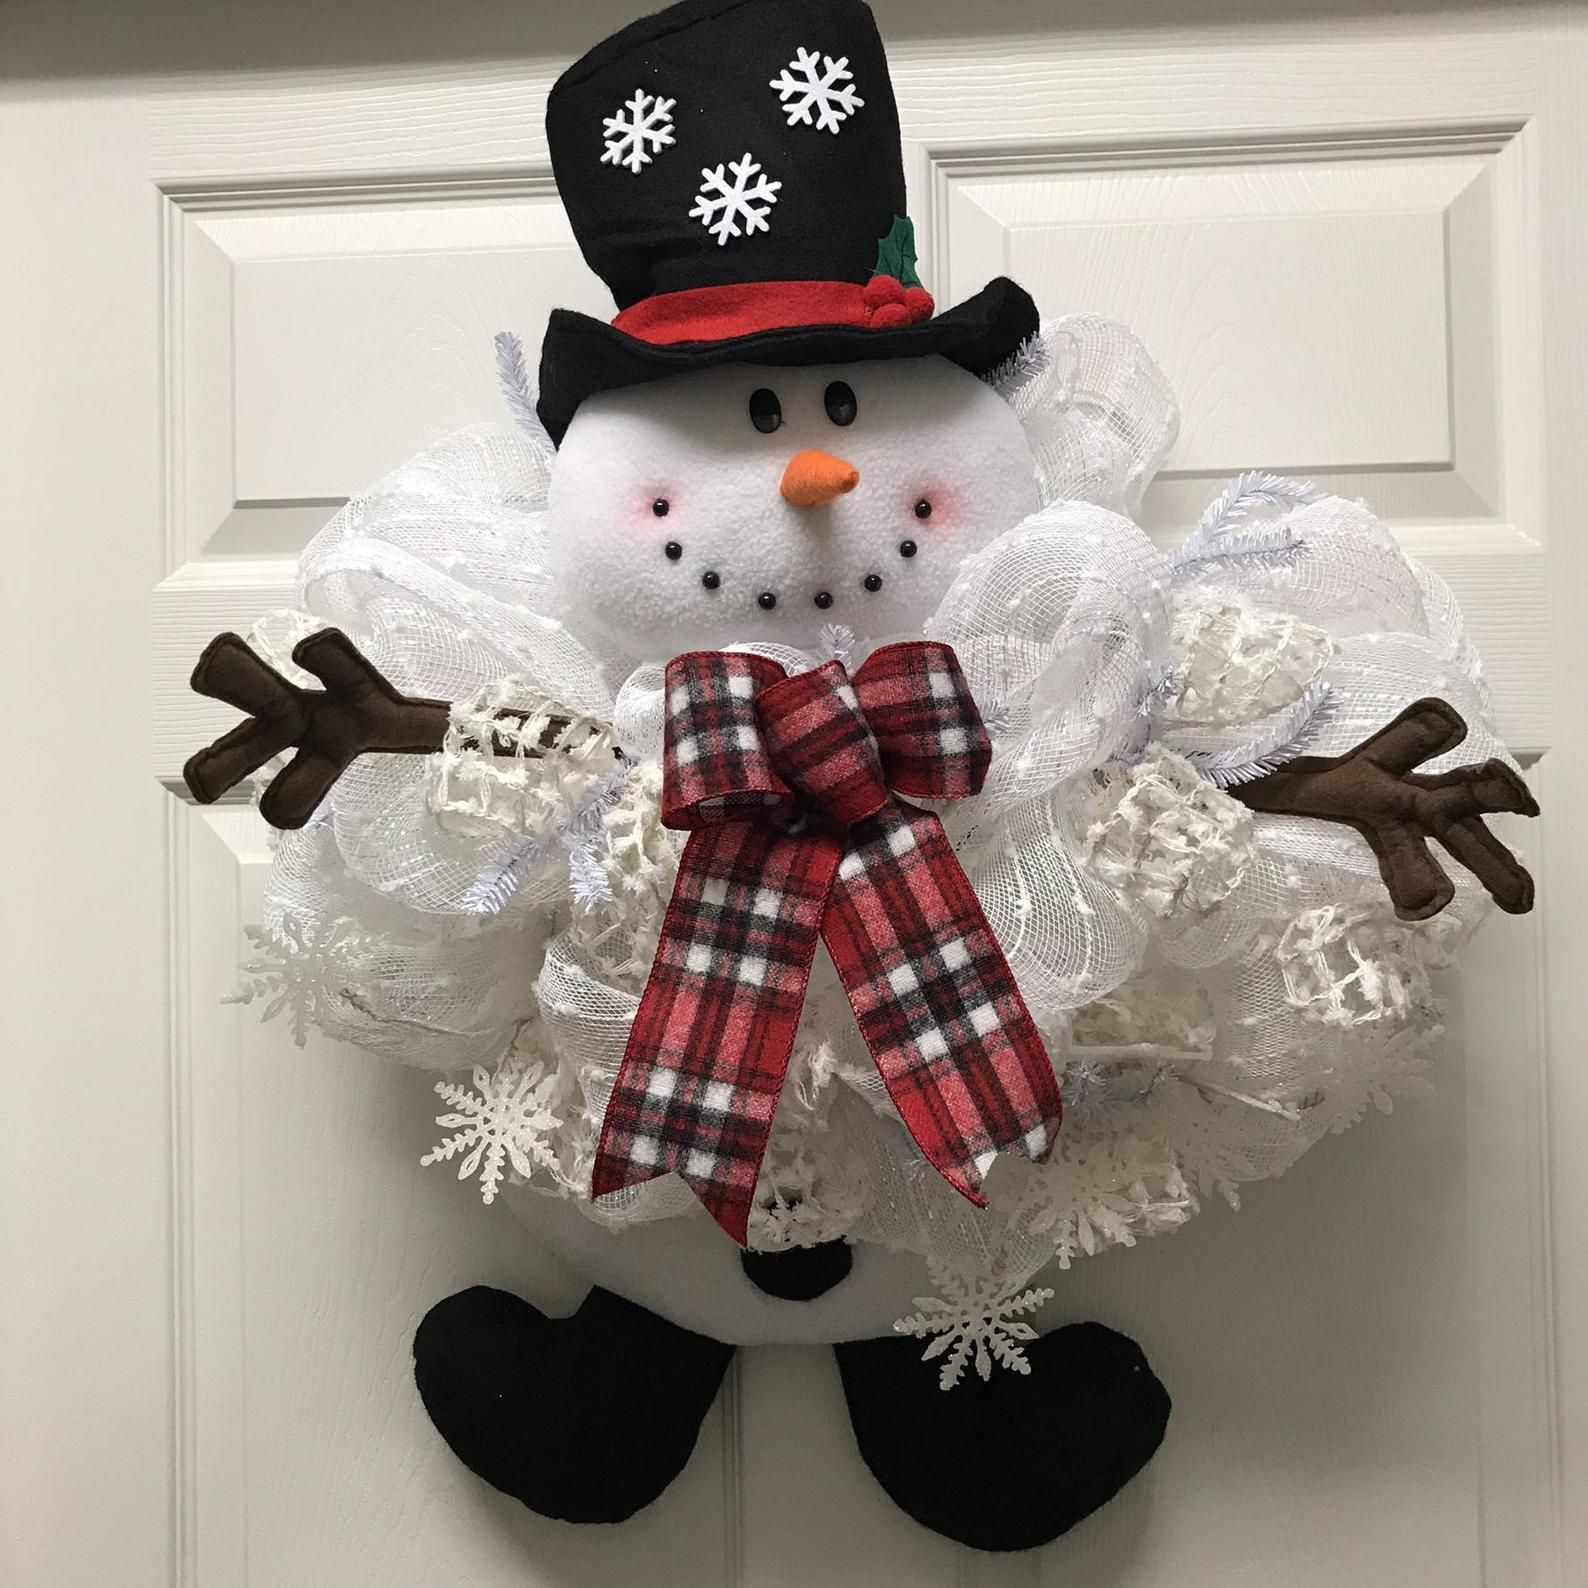 Snowman Wreath Snowman door hanger winter wreath holiday